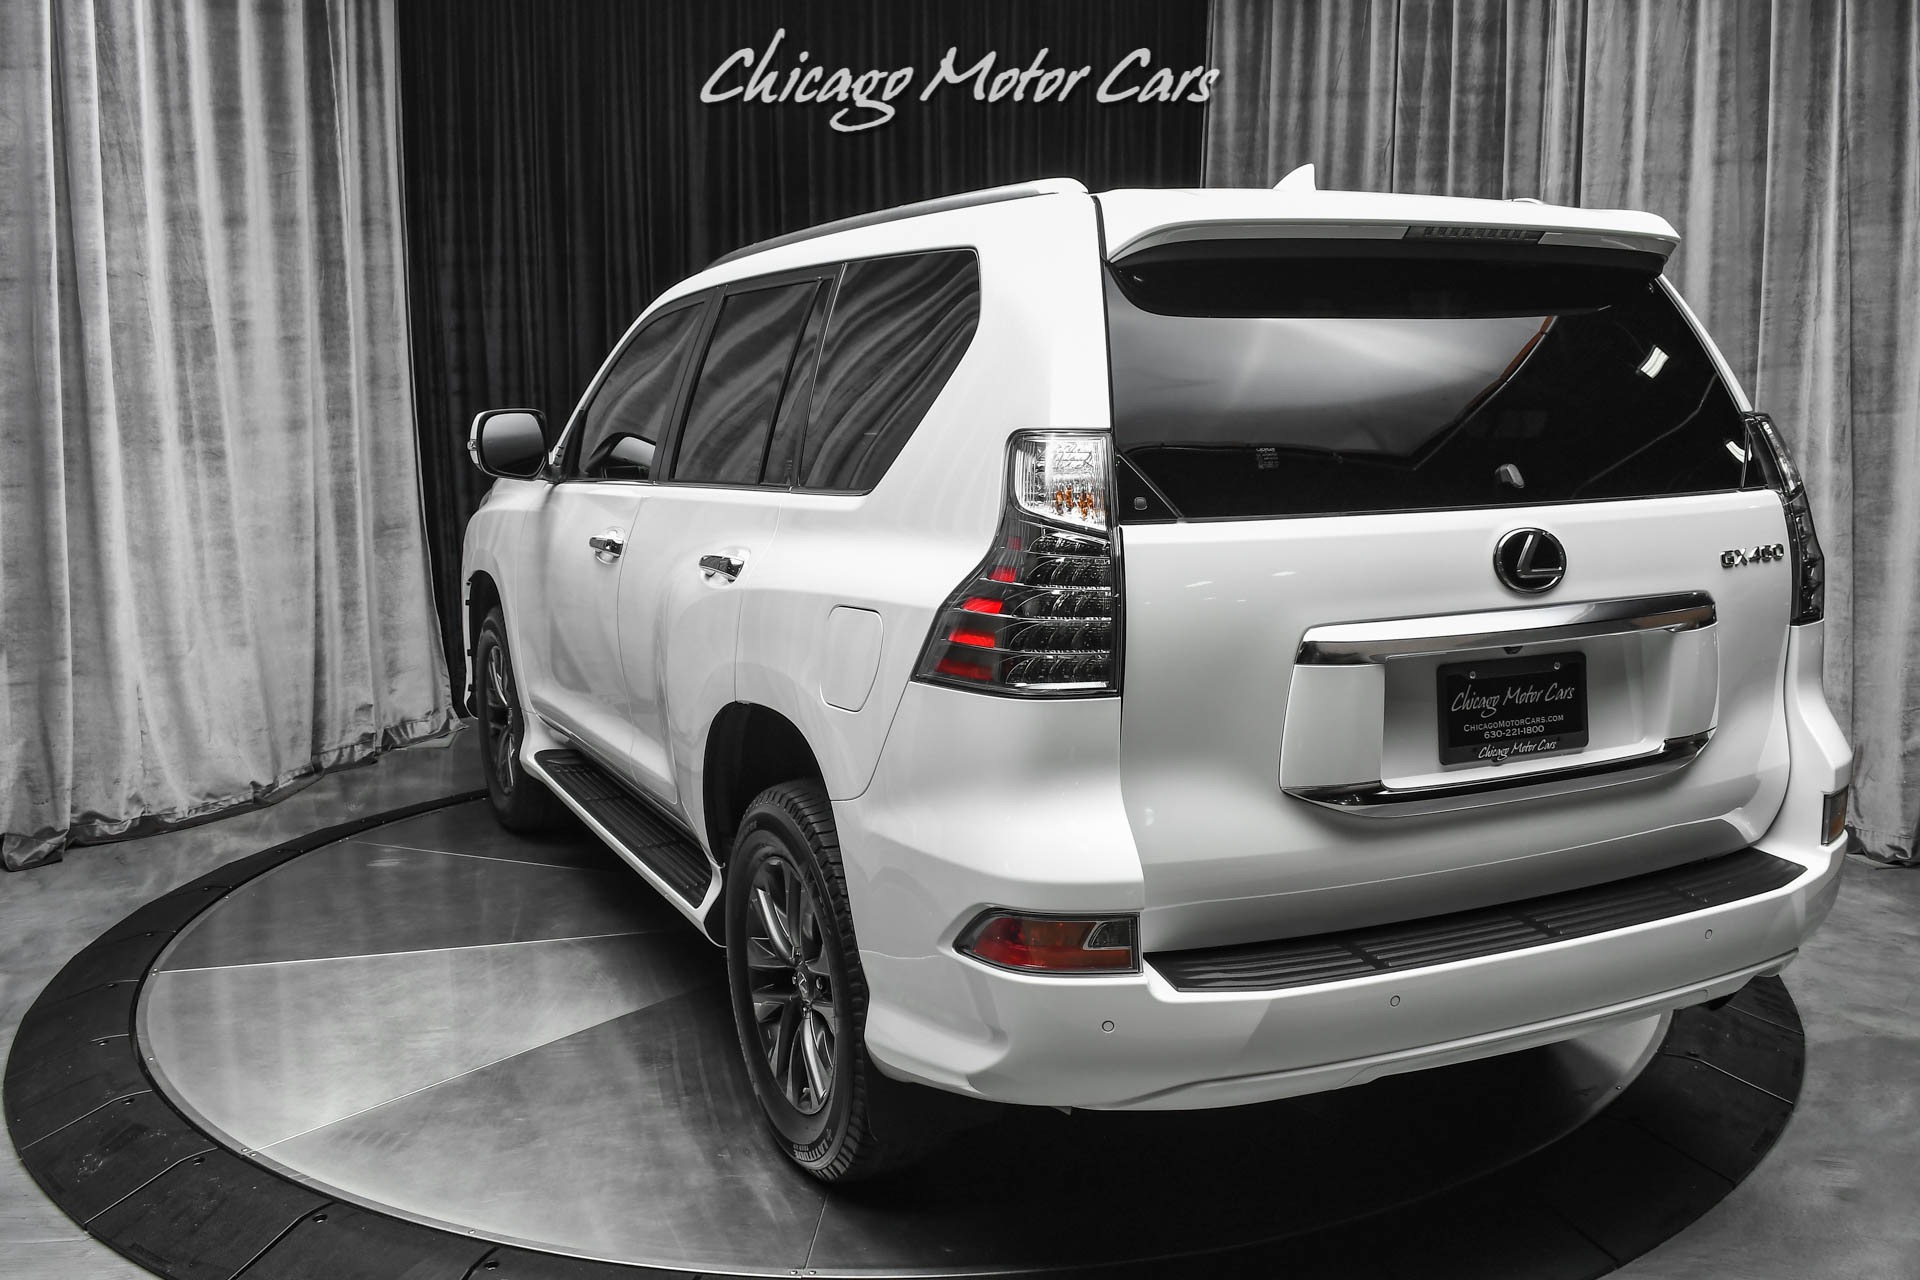 Used-2020-Lexus-GX-460-Premium-Package-Gorgeous-Color-Combination-Only-5k-Miles